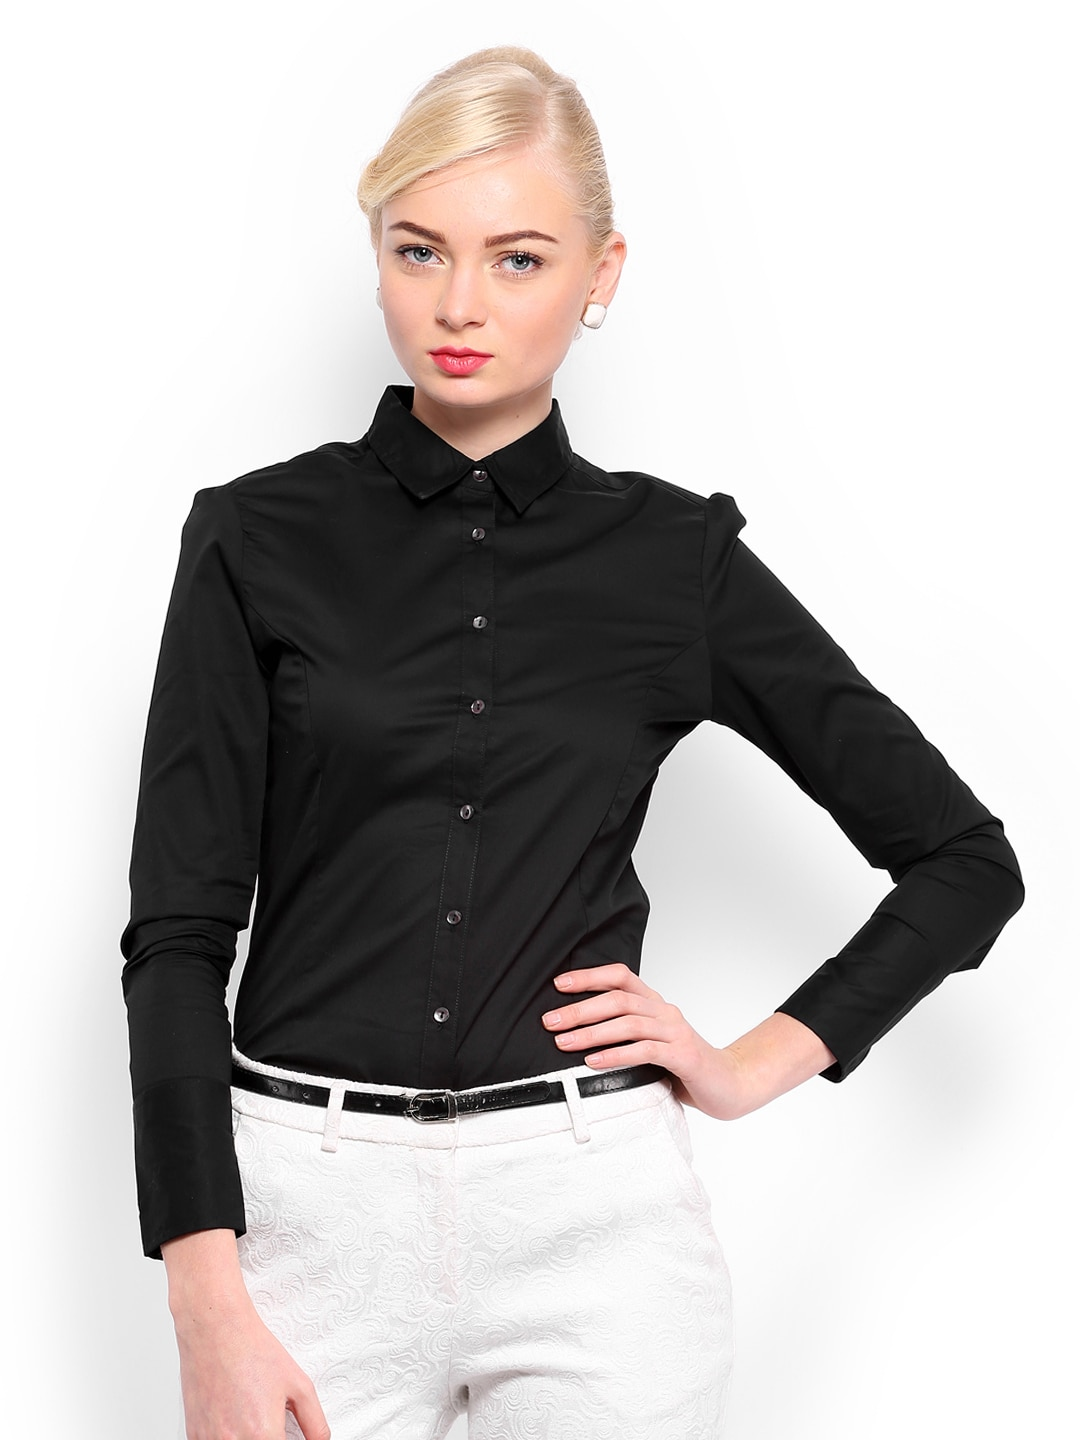 Find great deals on eBay for women formal shirts. Shop with confidence.